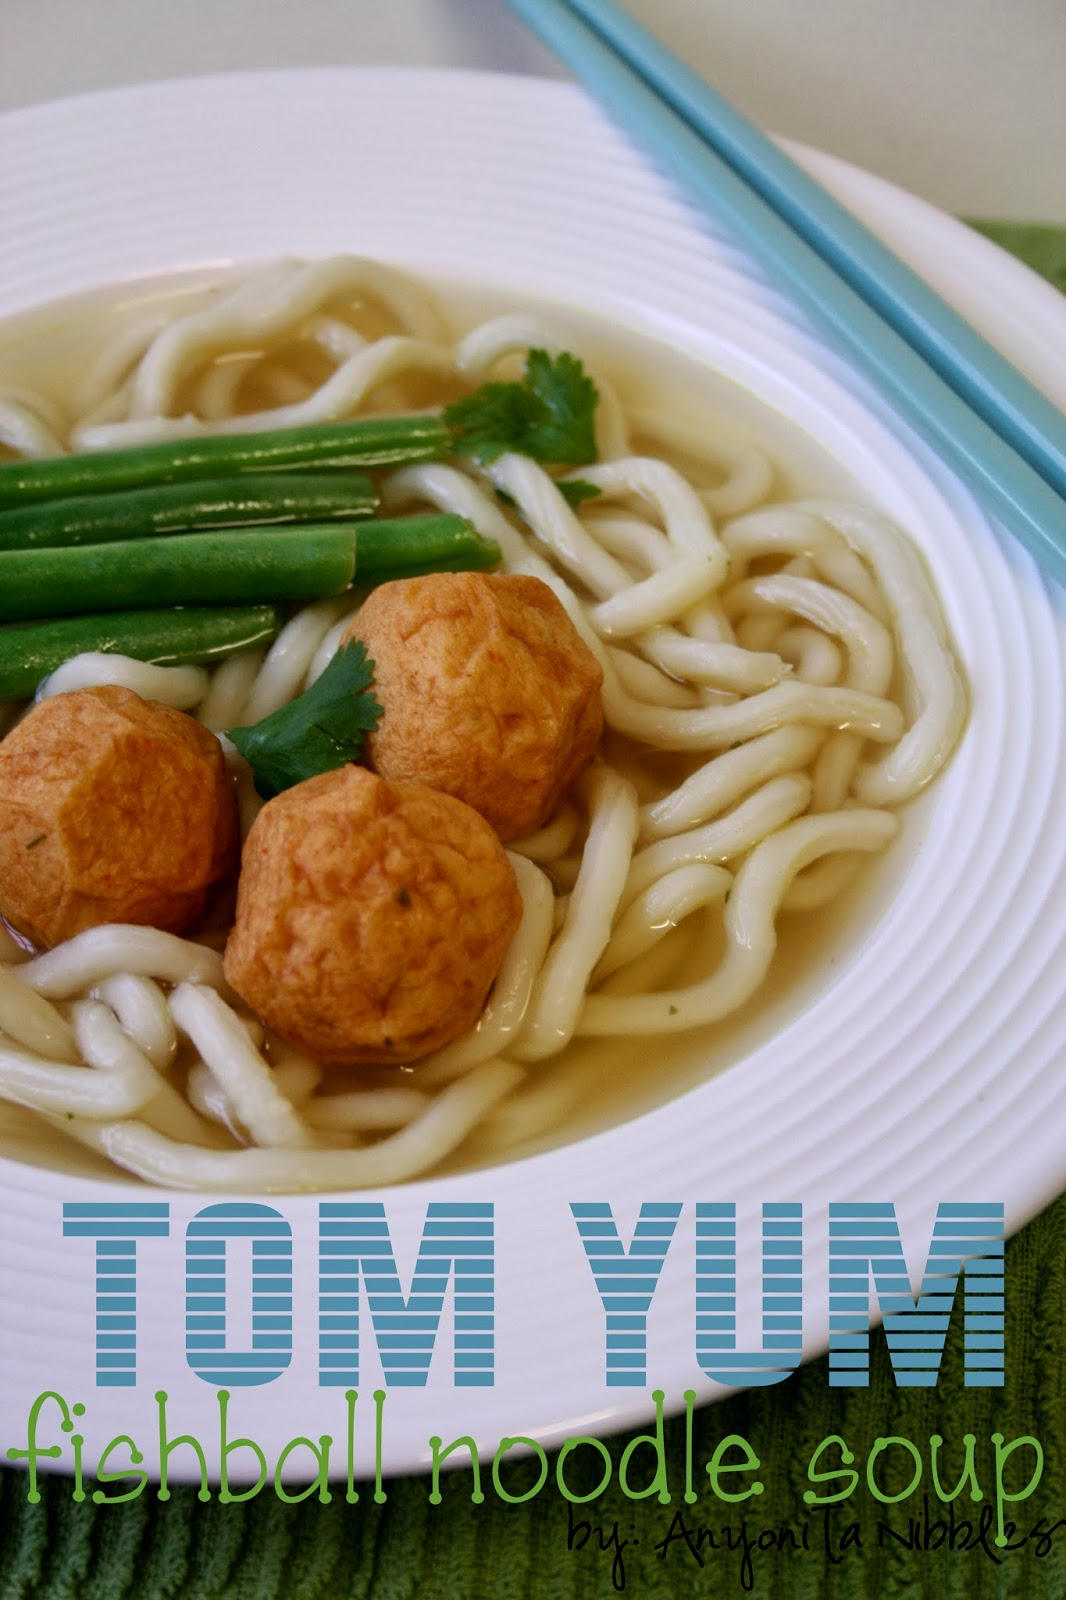 10 Minute Tom Yum Fish Ball Noodle Soup | Anyonita Nibbles